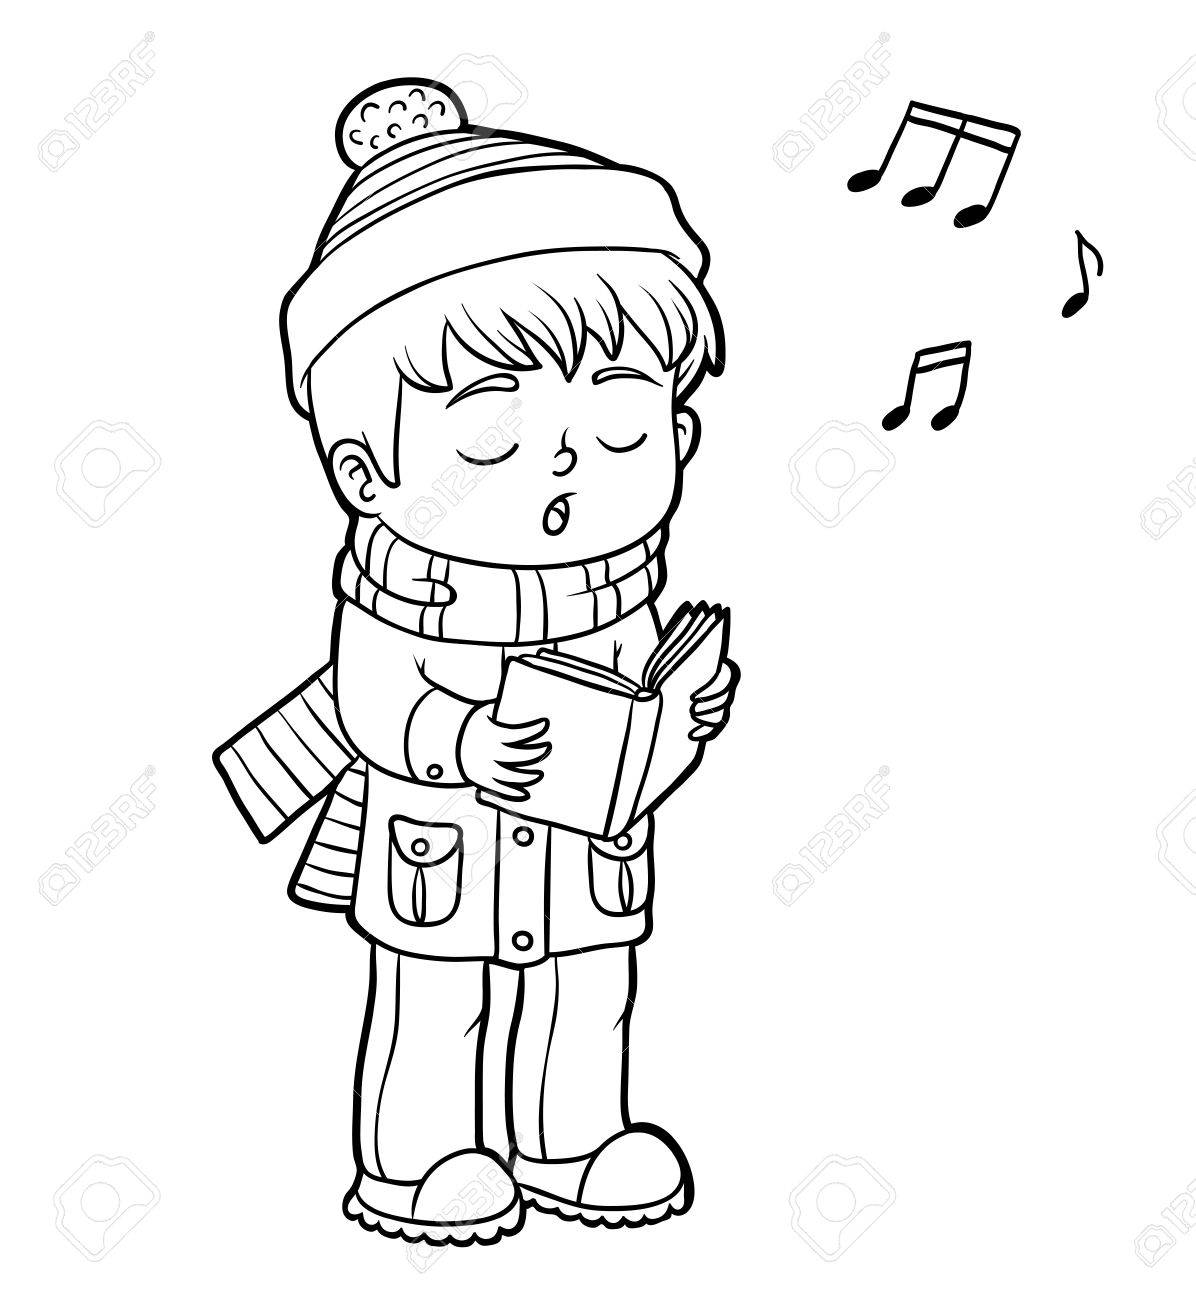 Coloring Book For Children, Boy Singing A Christmas Song Royalty ...